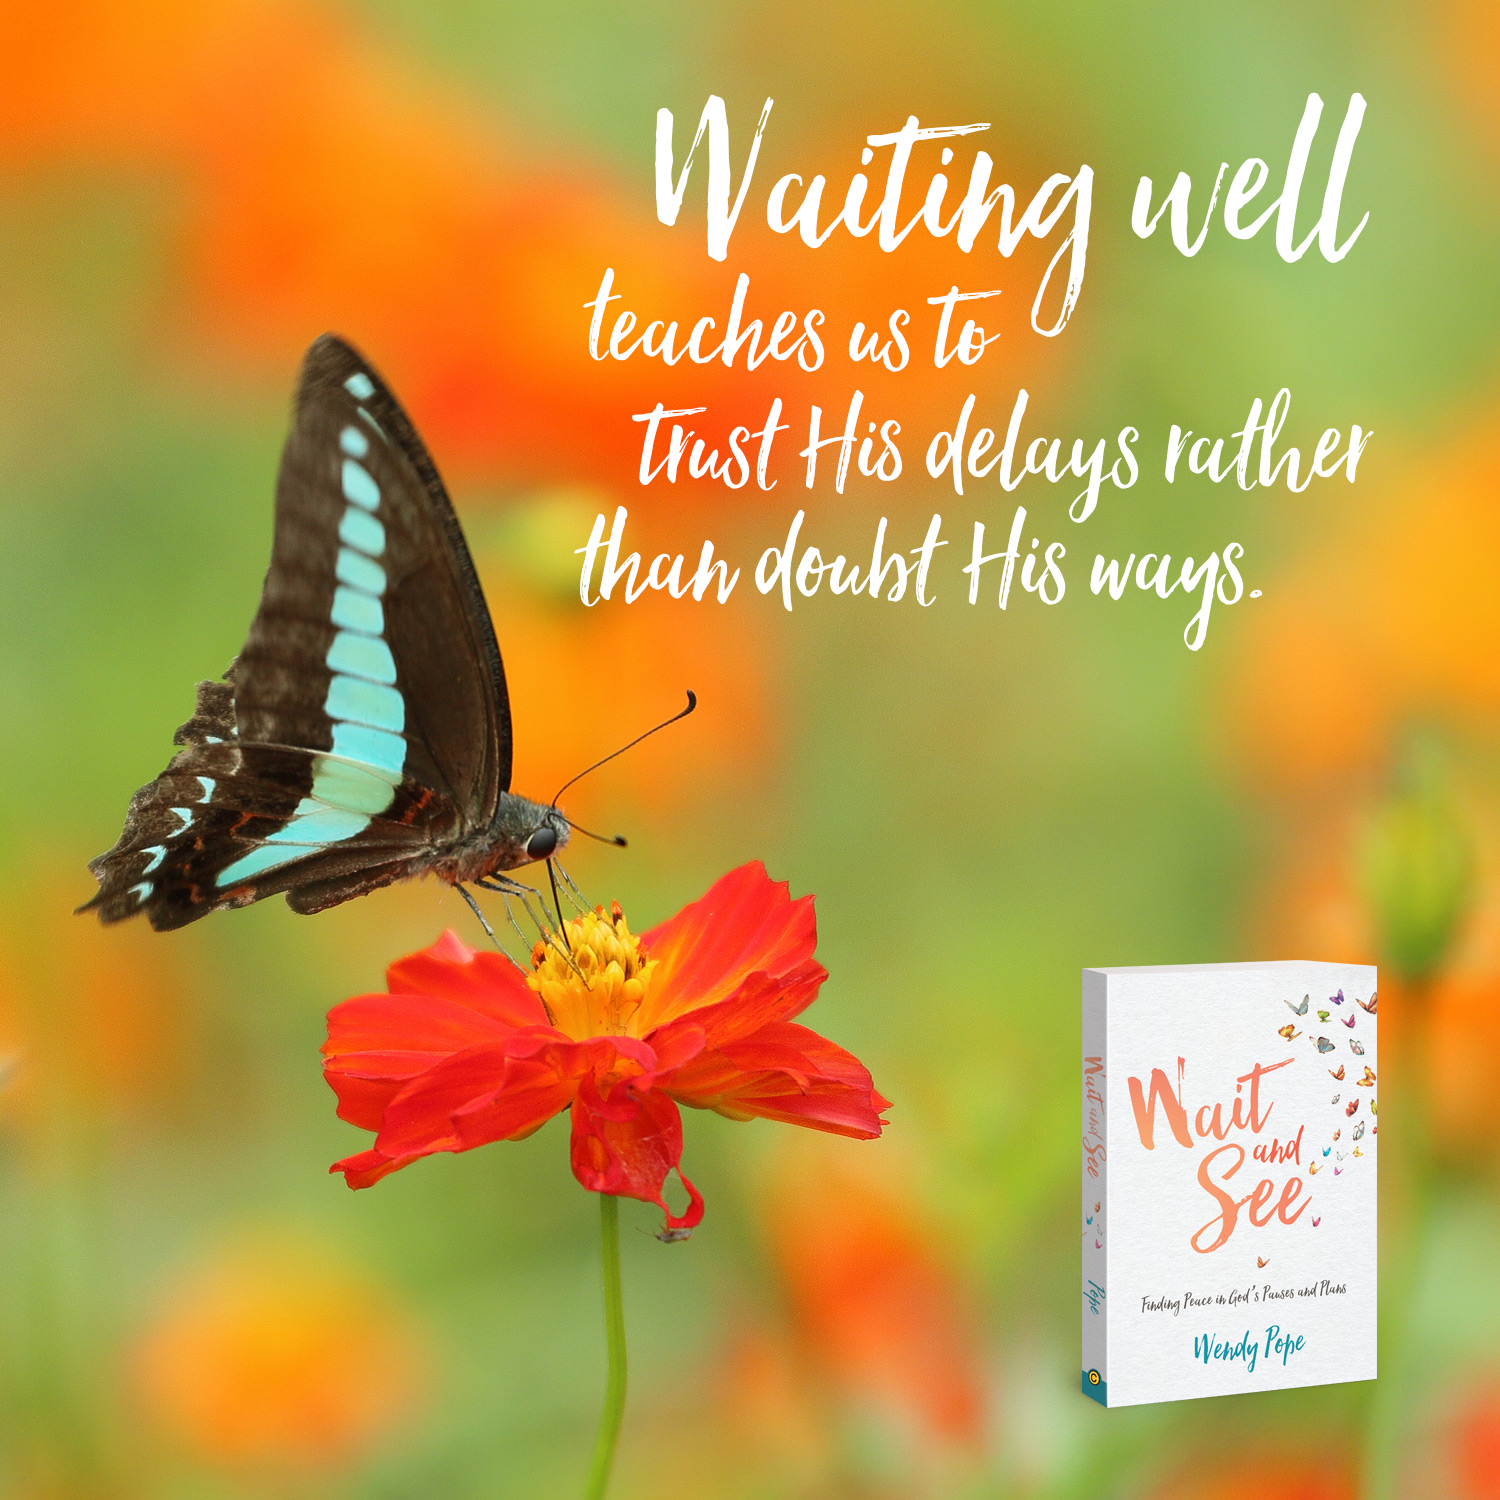 Waiting well teaches us to trust his delays rather than doubt his ways.